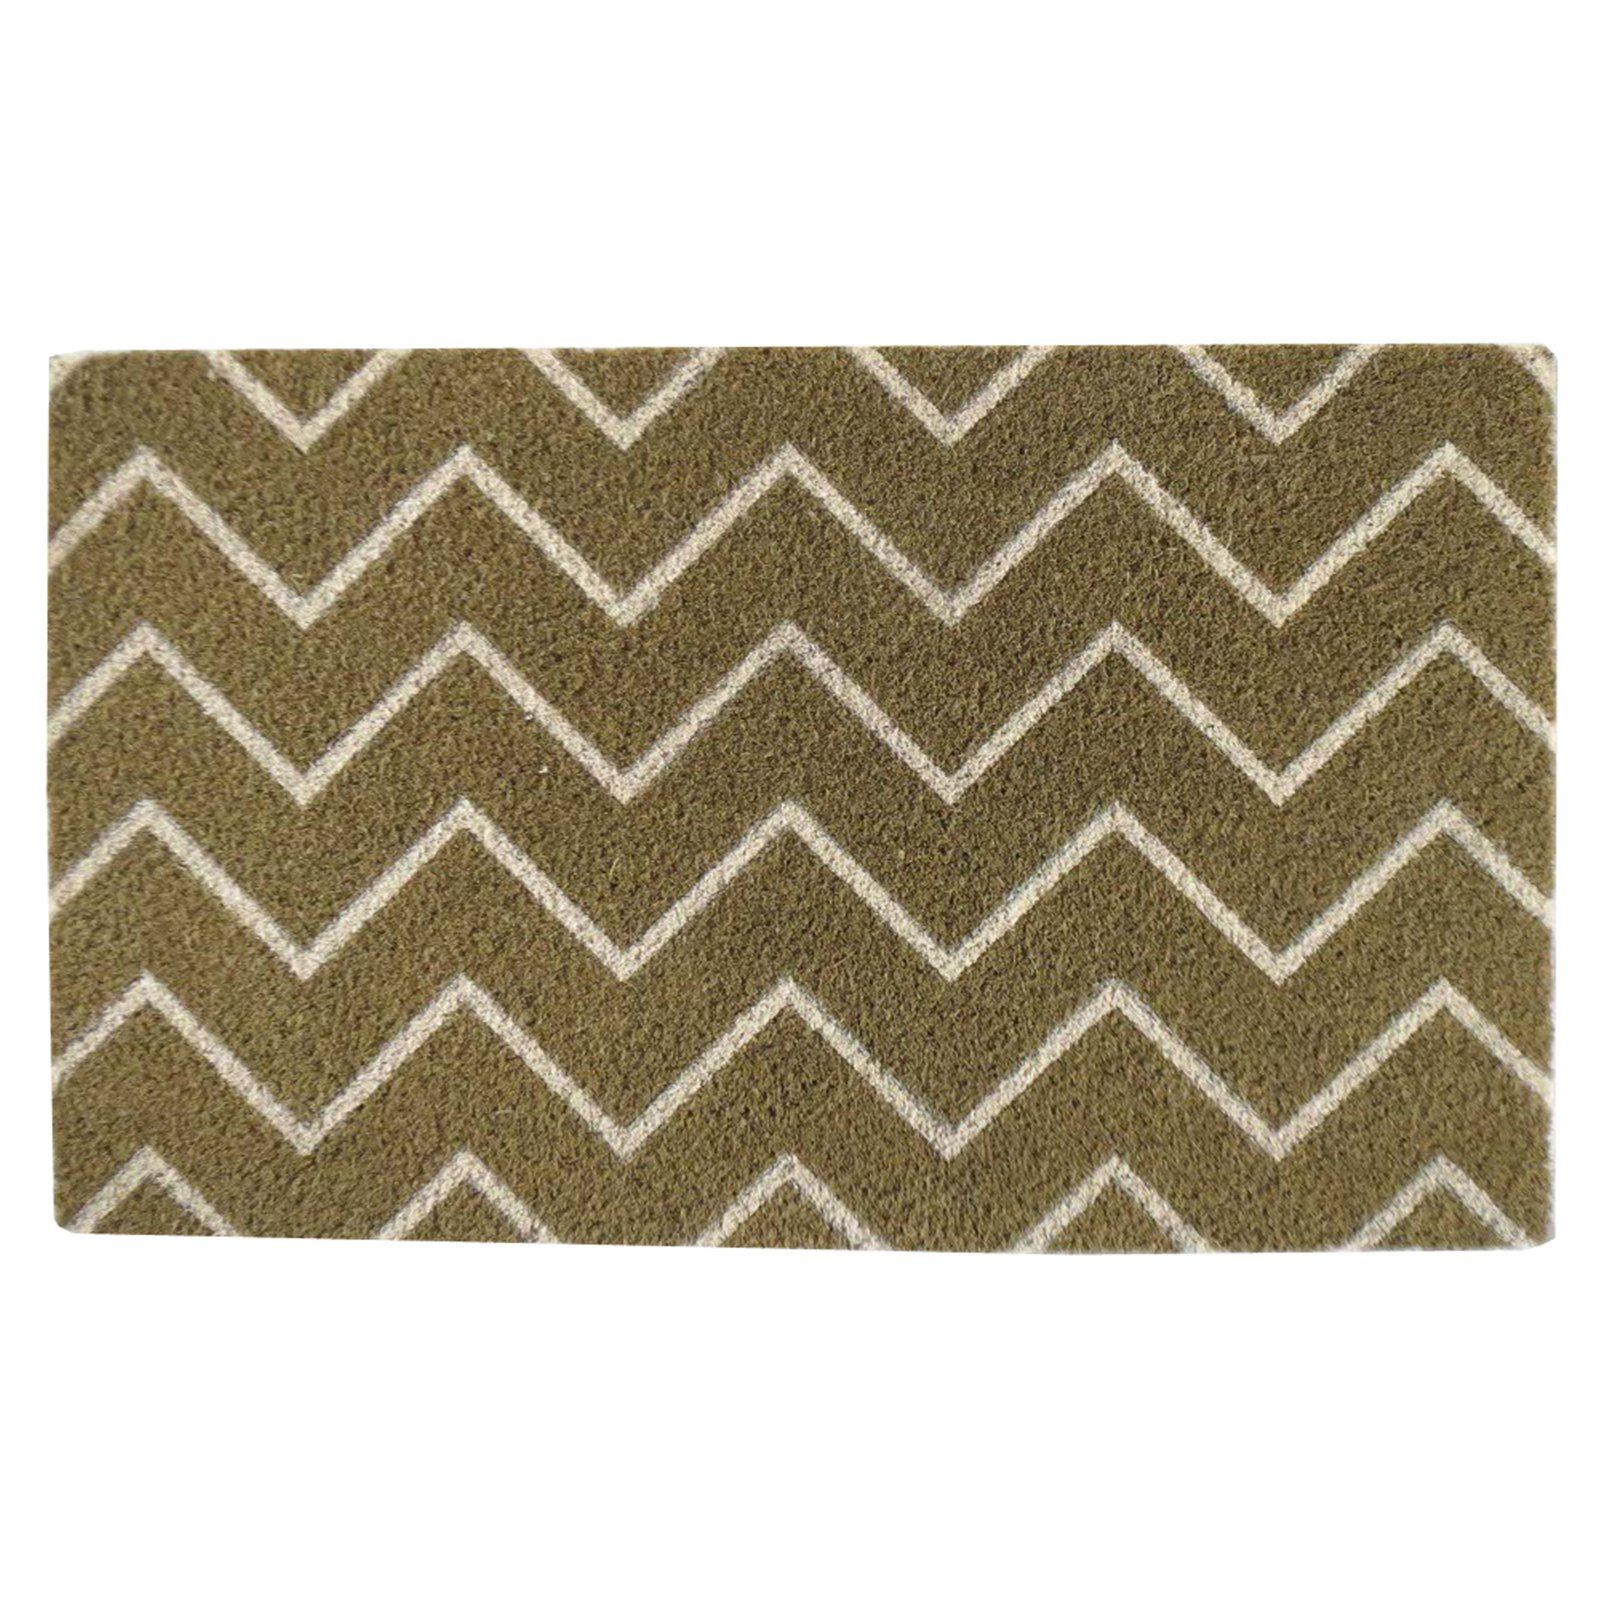 First Impression Tufted Chevron Outdoor Door Mat